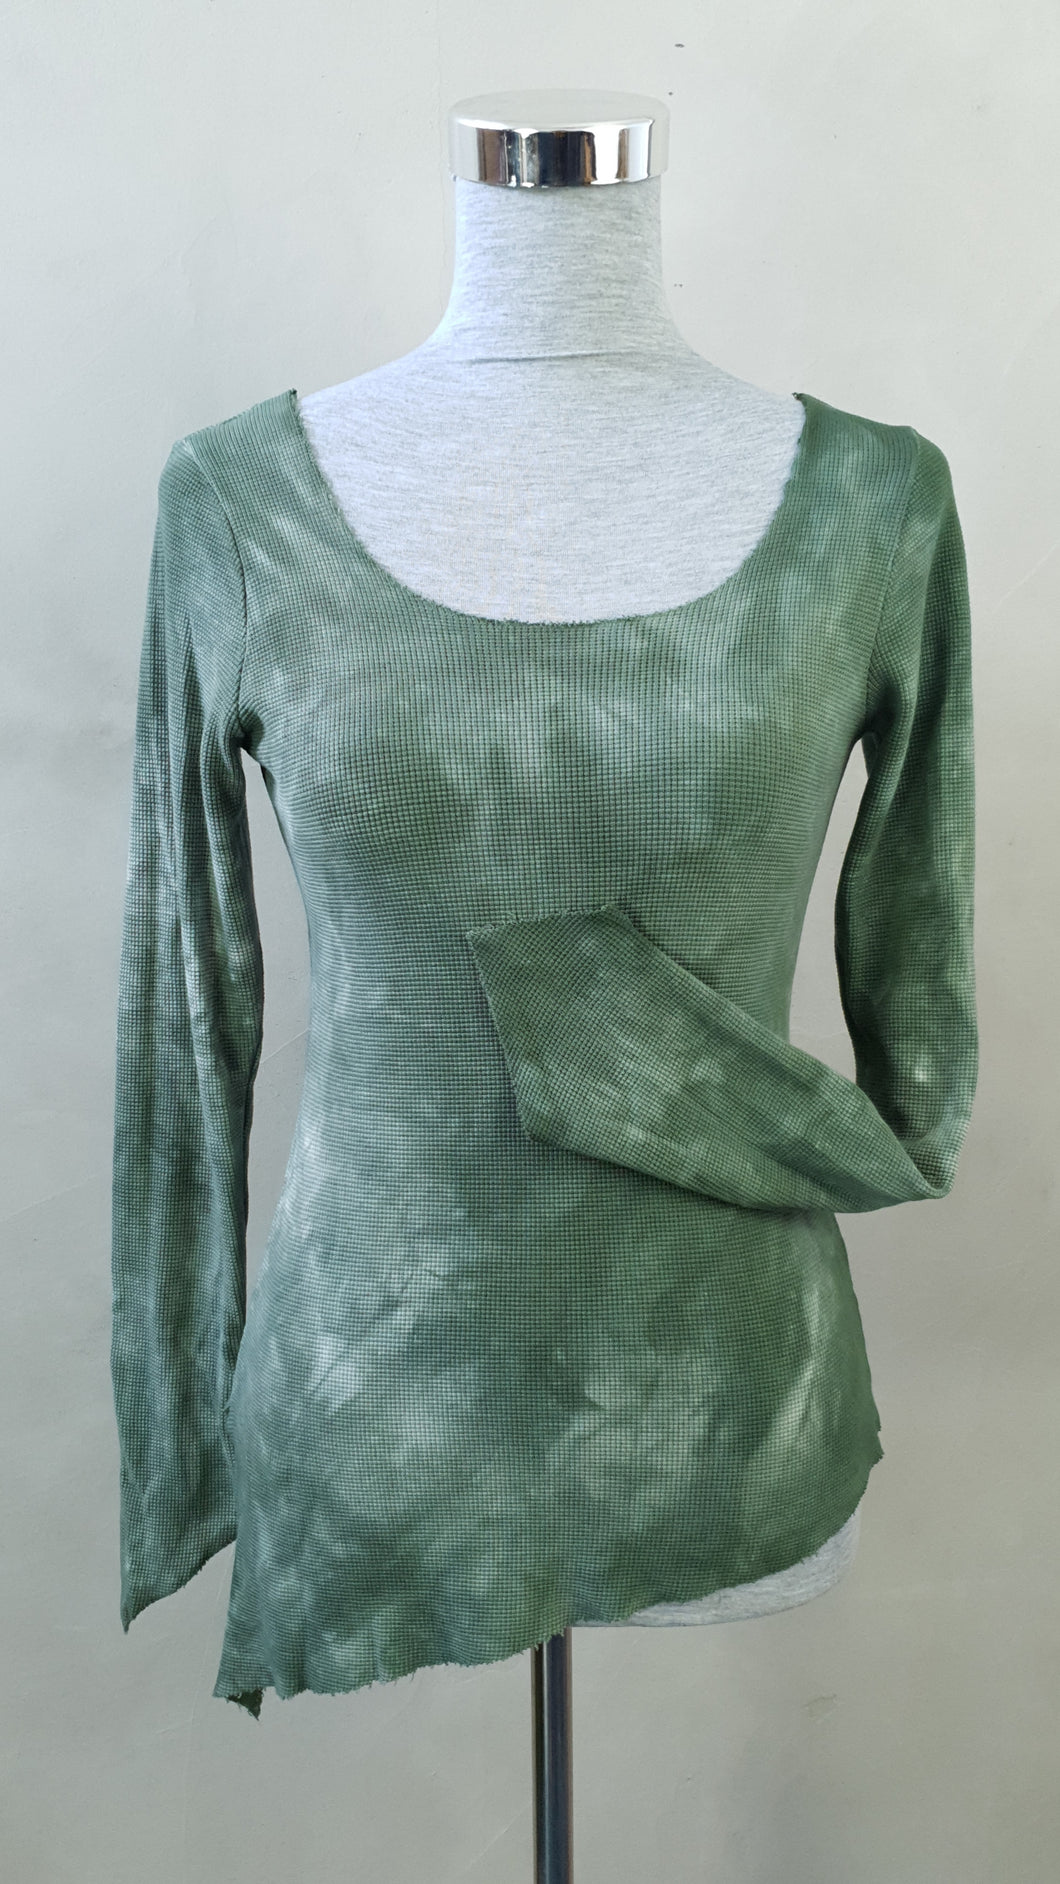 Evergreen Woodland Pixie Sleeve Top